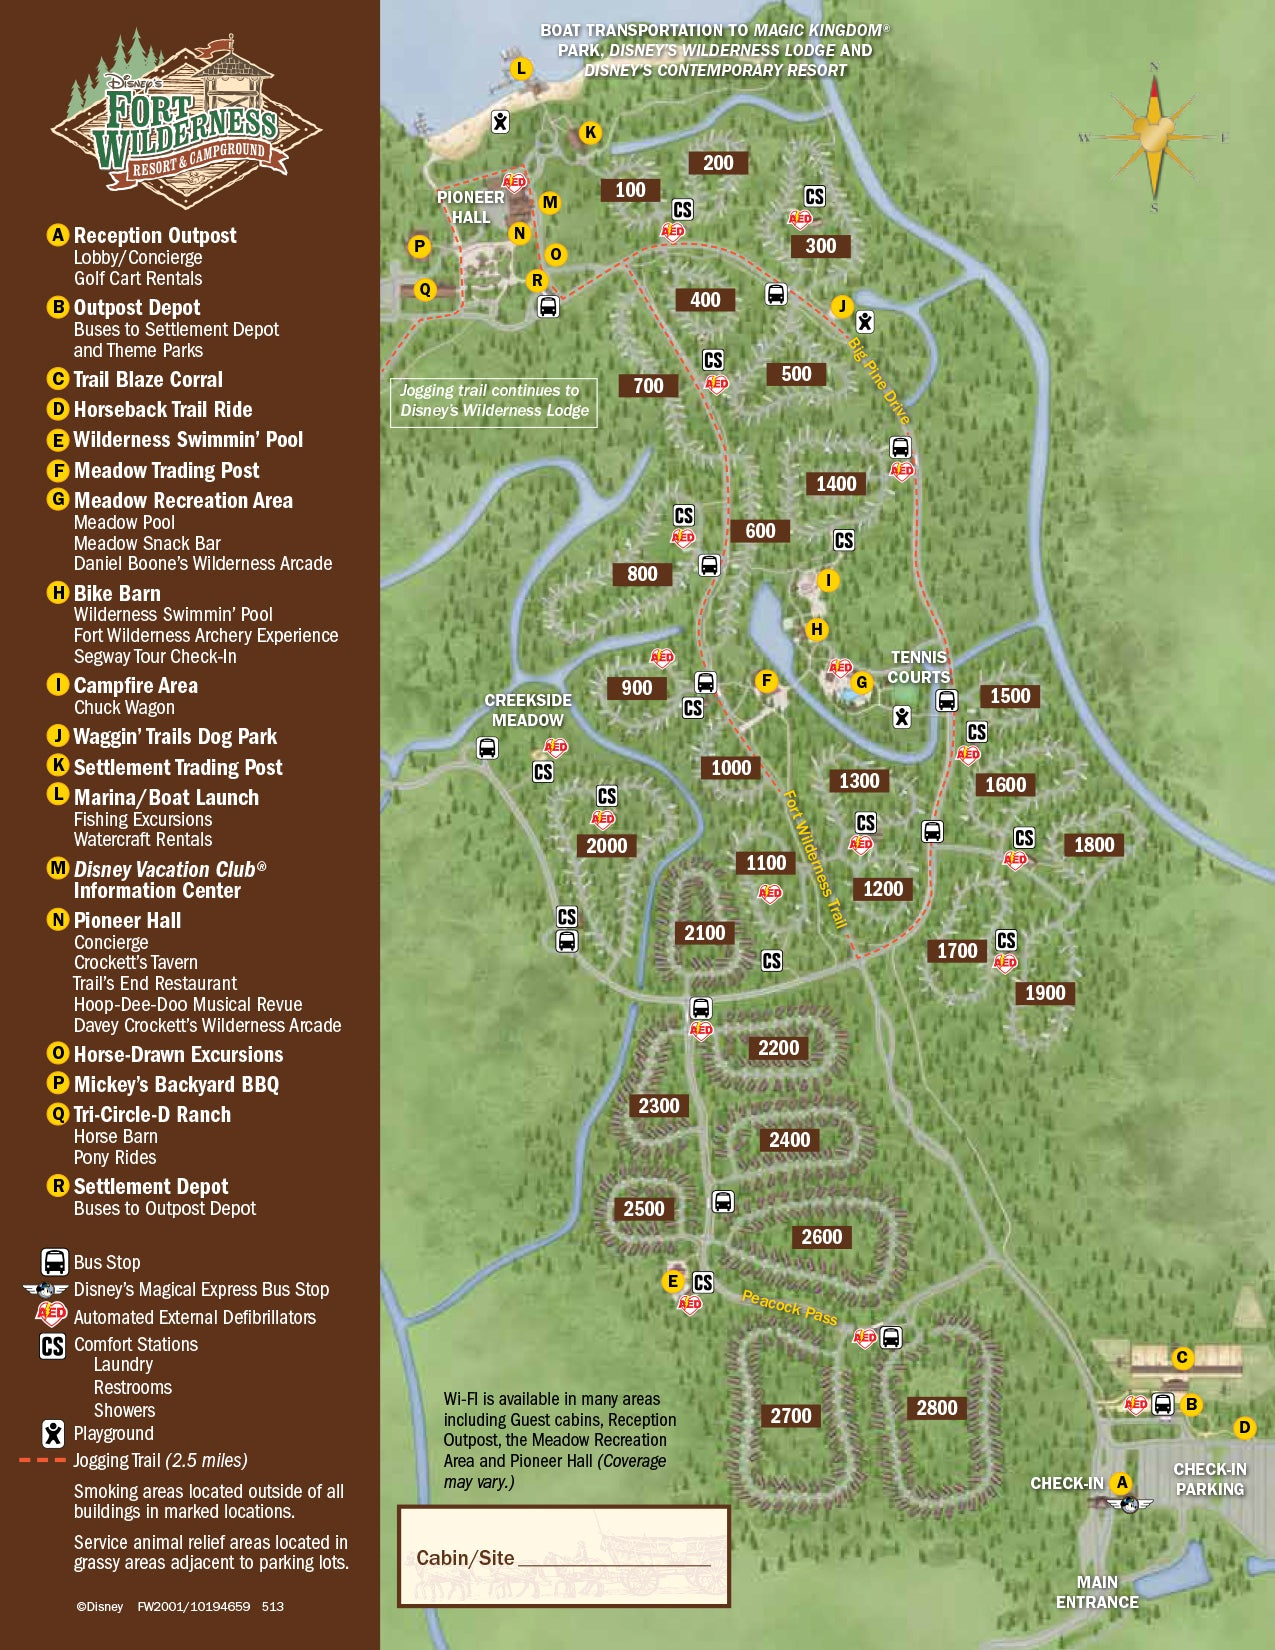 Fort Wilderness Campsite map